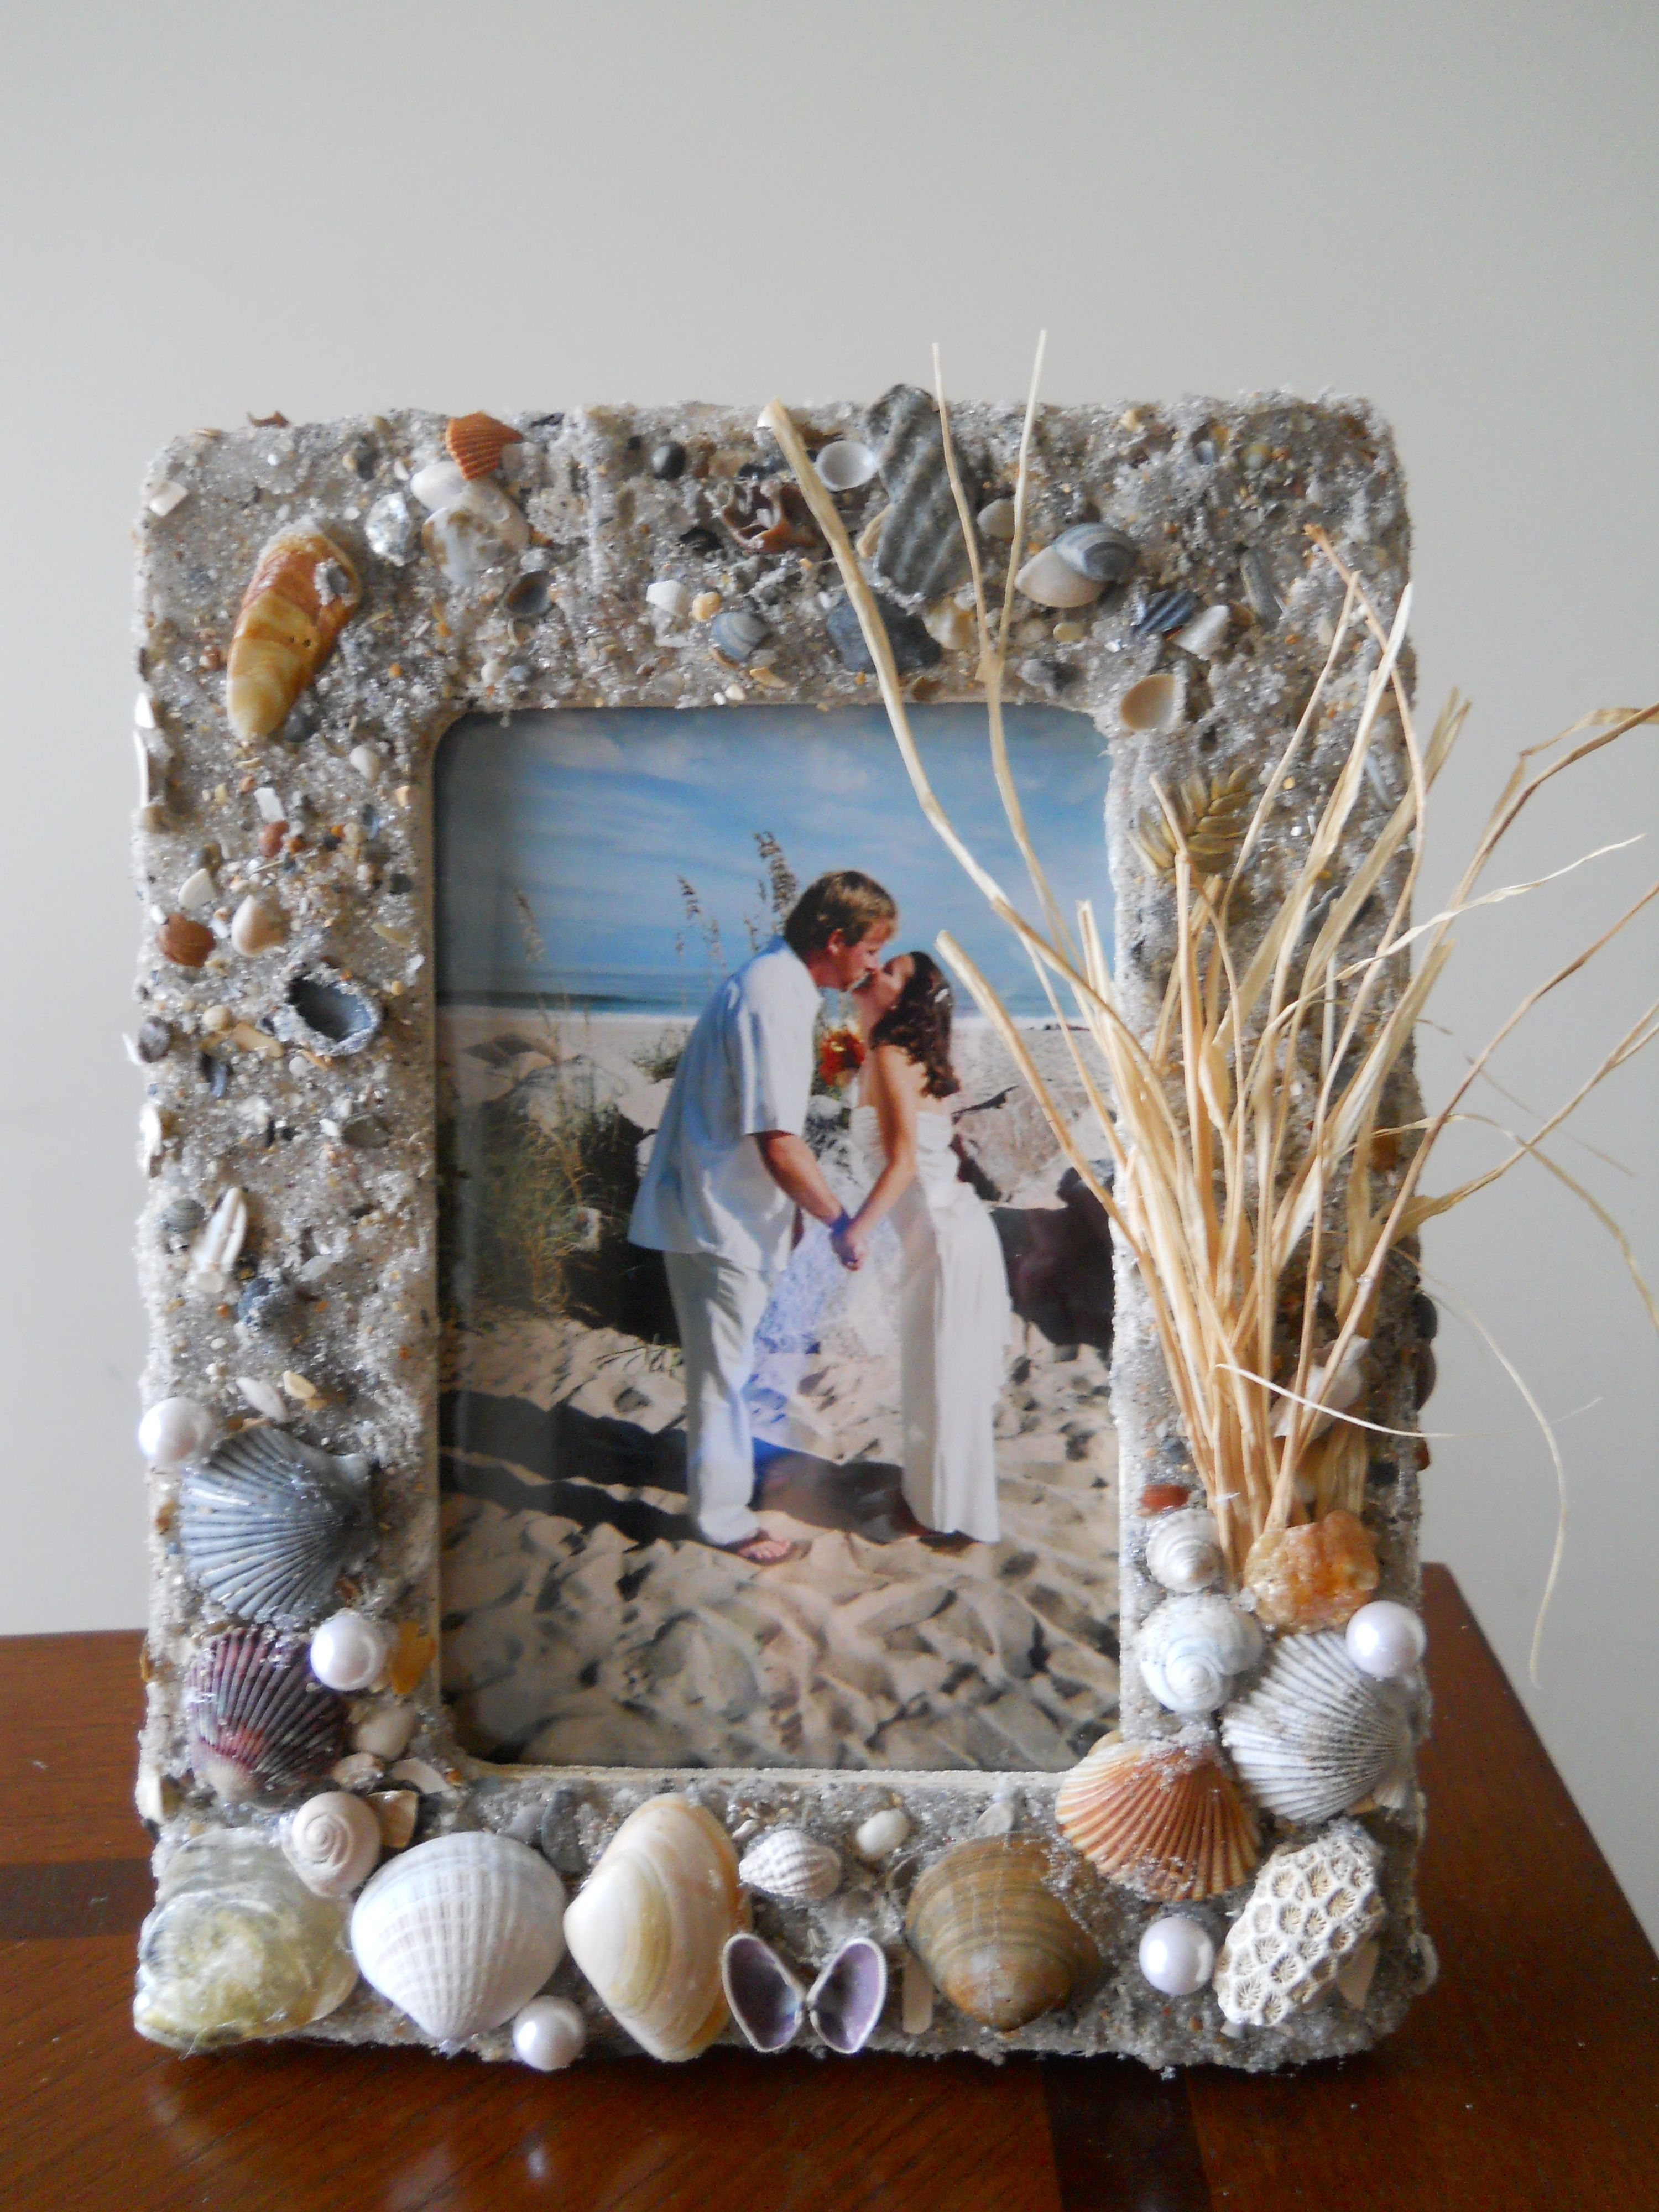 Beach Wedding 4x6 Wooden Beach Picture Frame With Hand Collected Beach Sand And Sea Shells And Pearl Arte Com Conchas Trabalhos Manuais Porta Retrato Artesanal